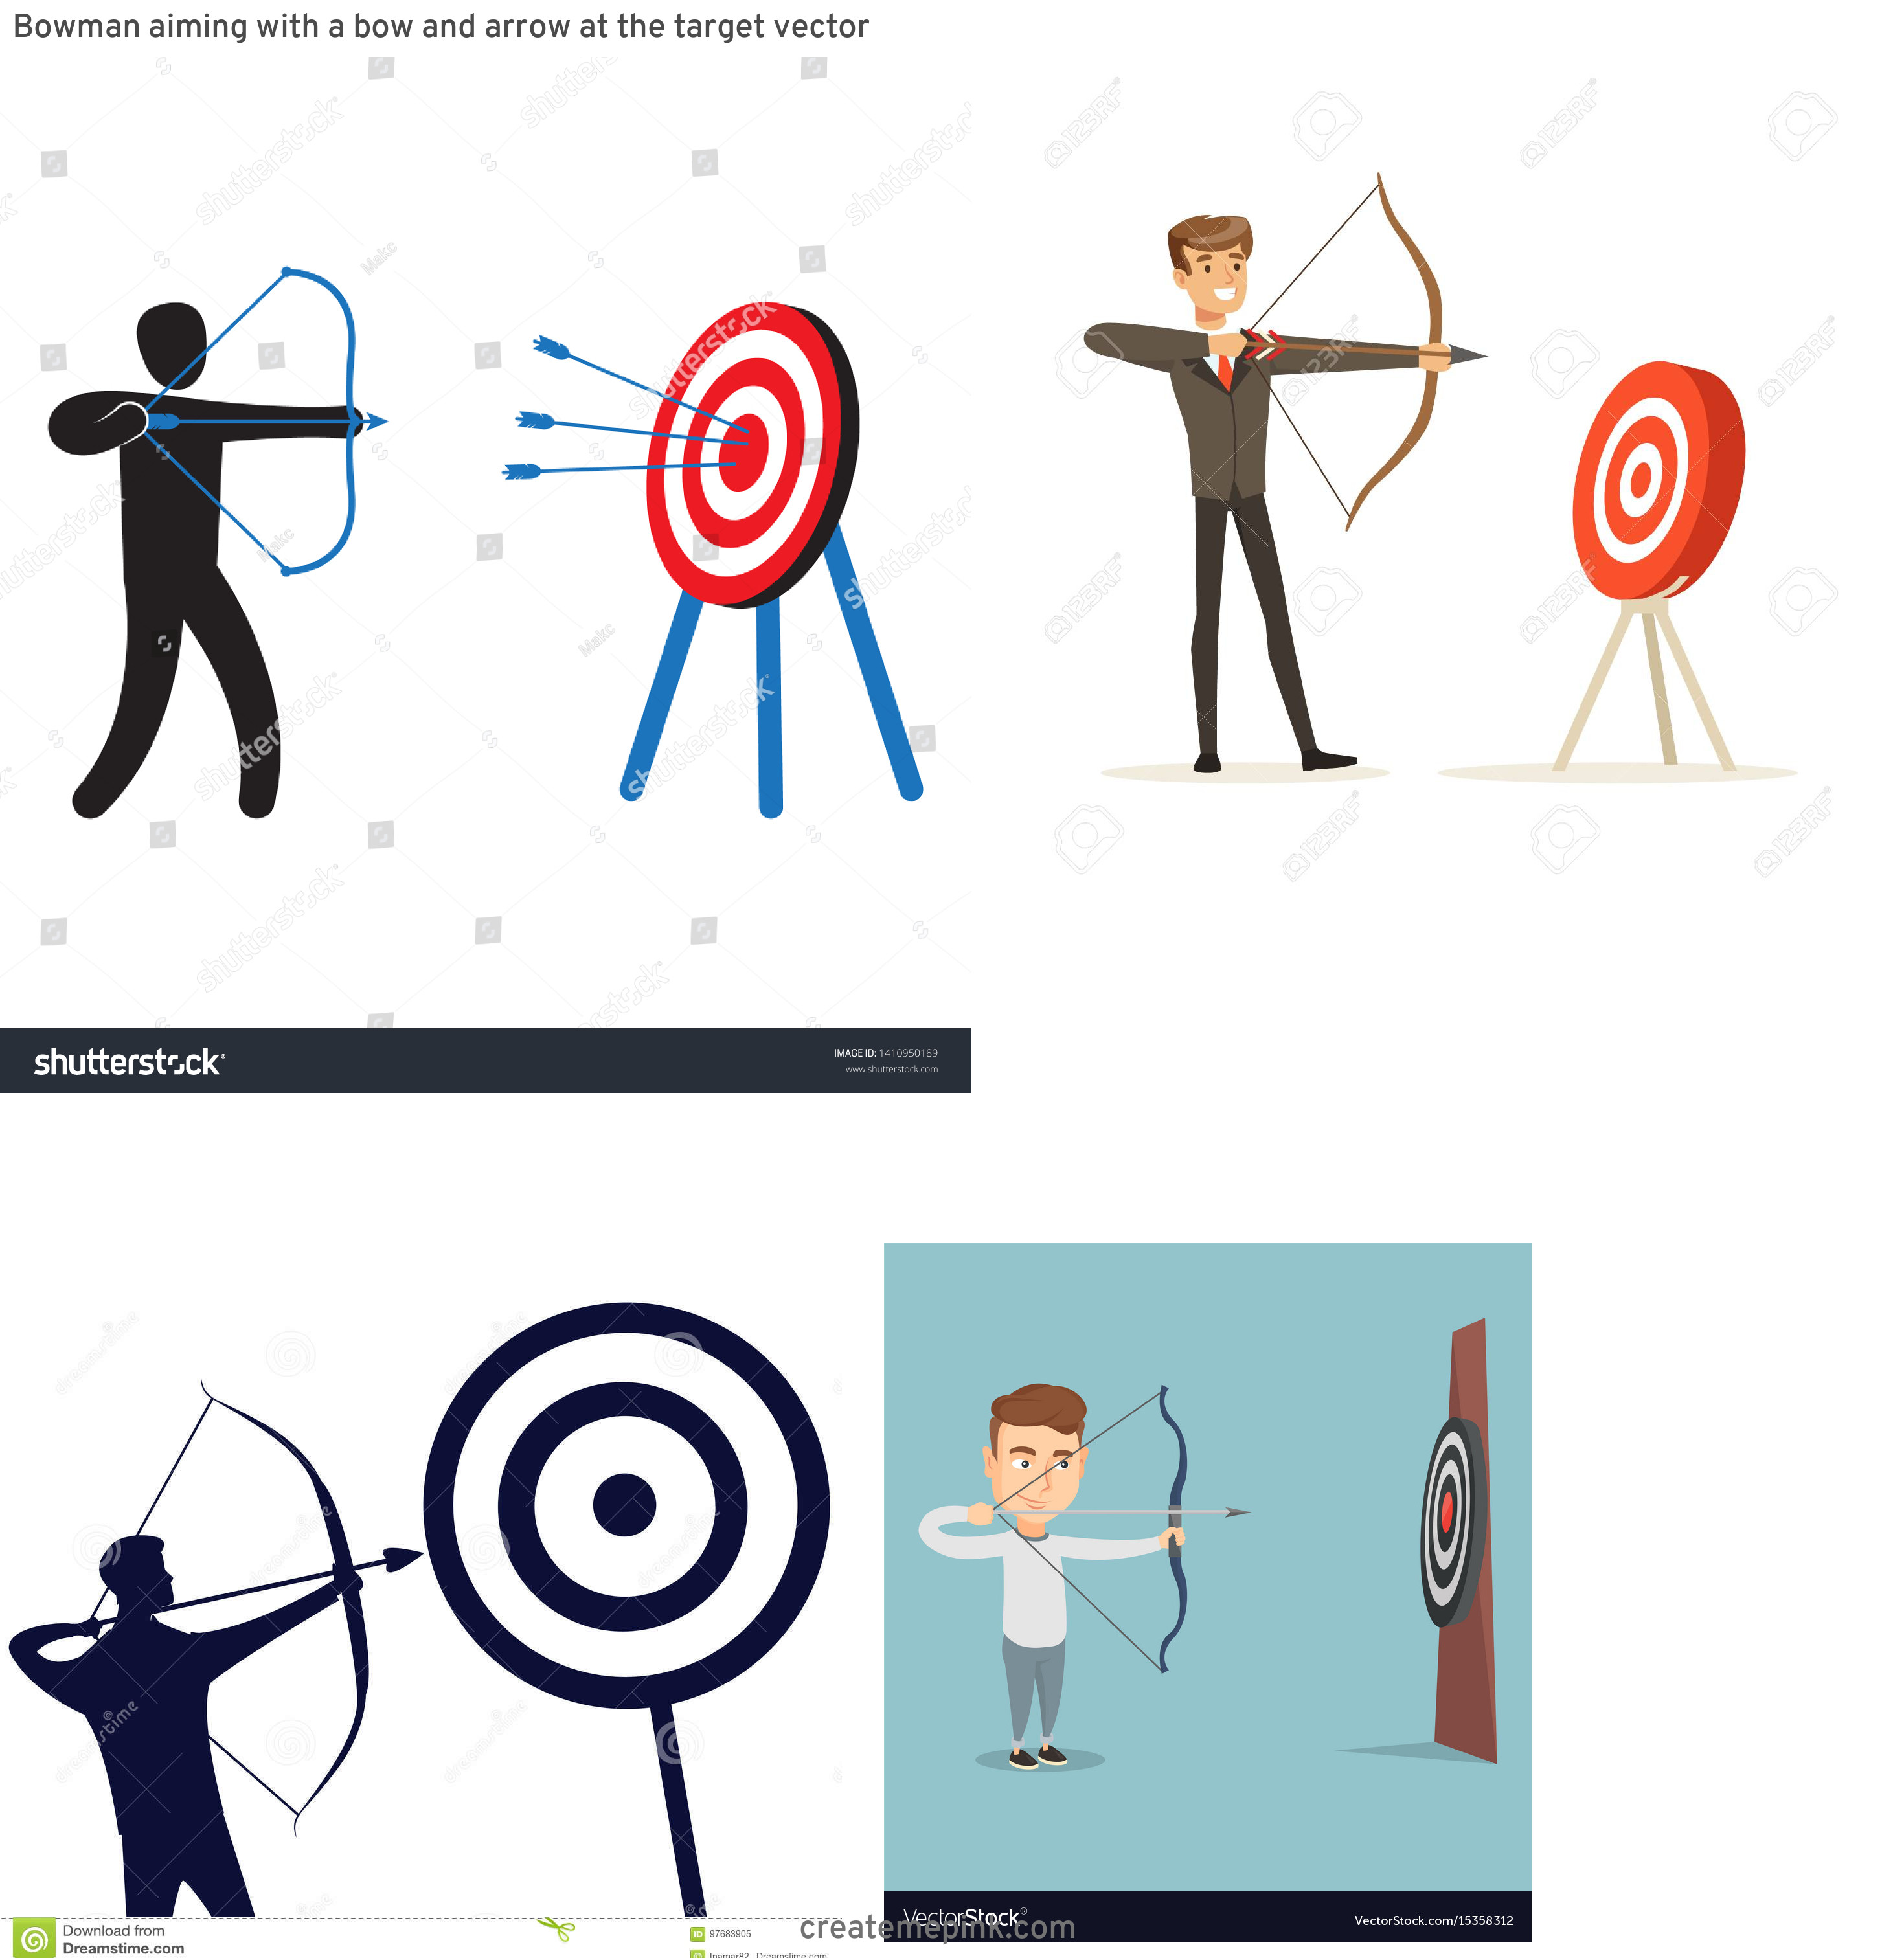 Target Bow And Arrow Vector: Bowman Aiming With A Bow And Arrow At The Target Vector